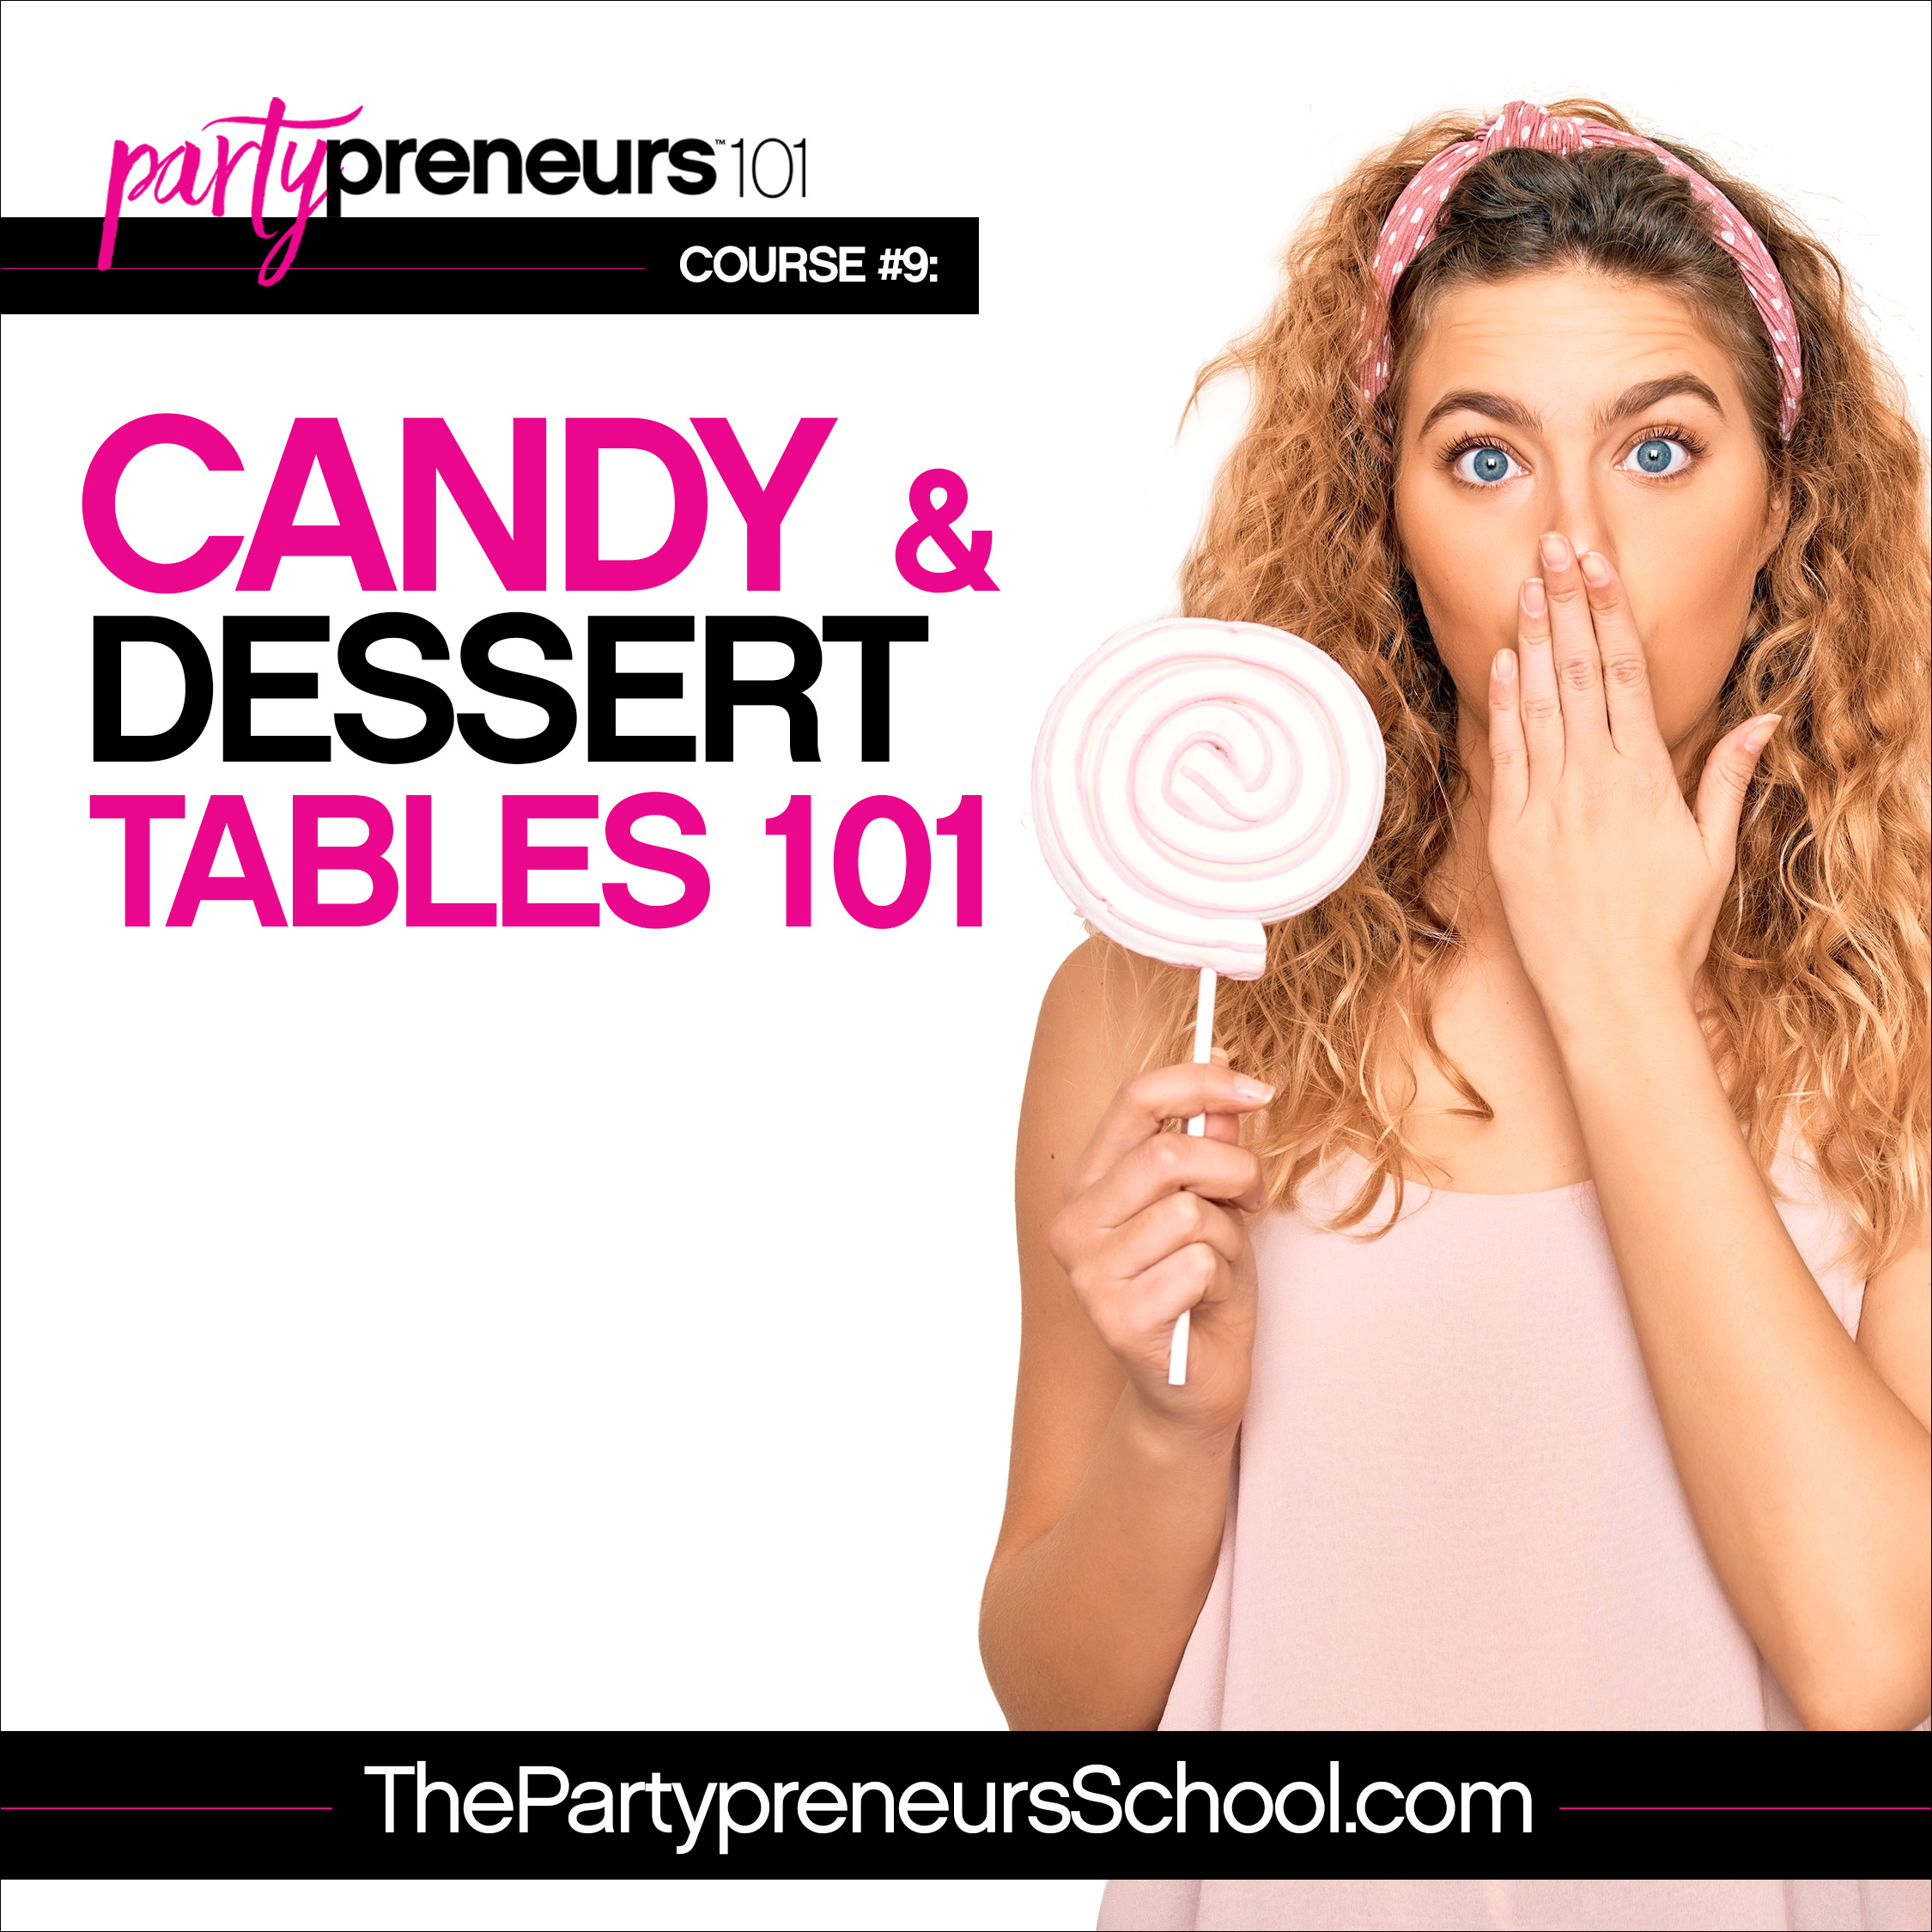 How to price candy and dessert tables